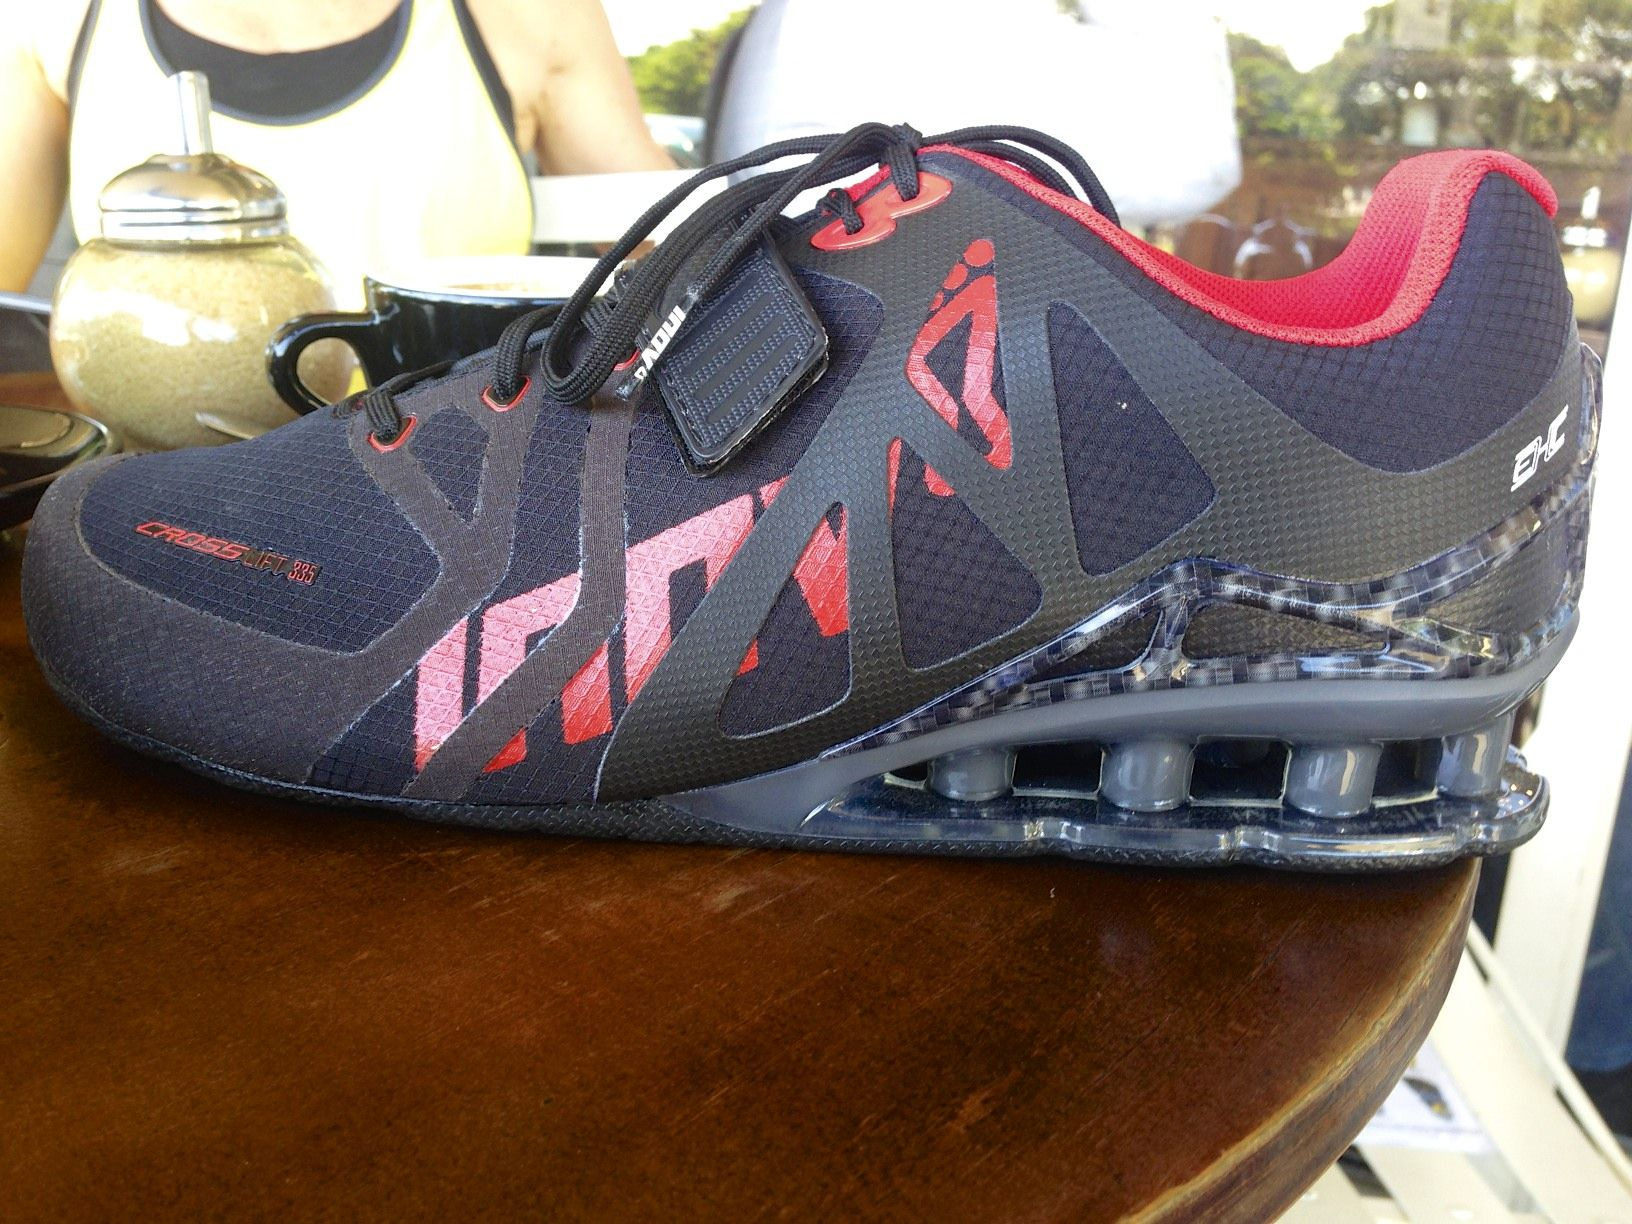 dc46c6bf0a6 First look at the Inov-8 Weightlifting Shoe the CrossLift 315 Crossfit  Lifting Shoes